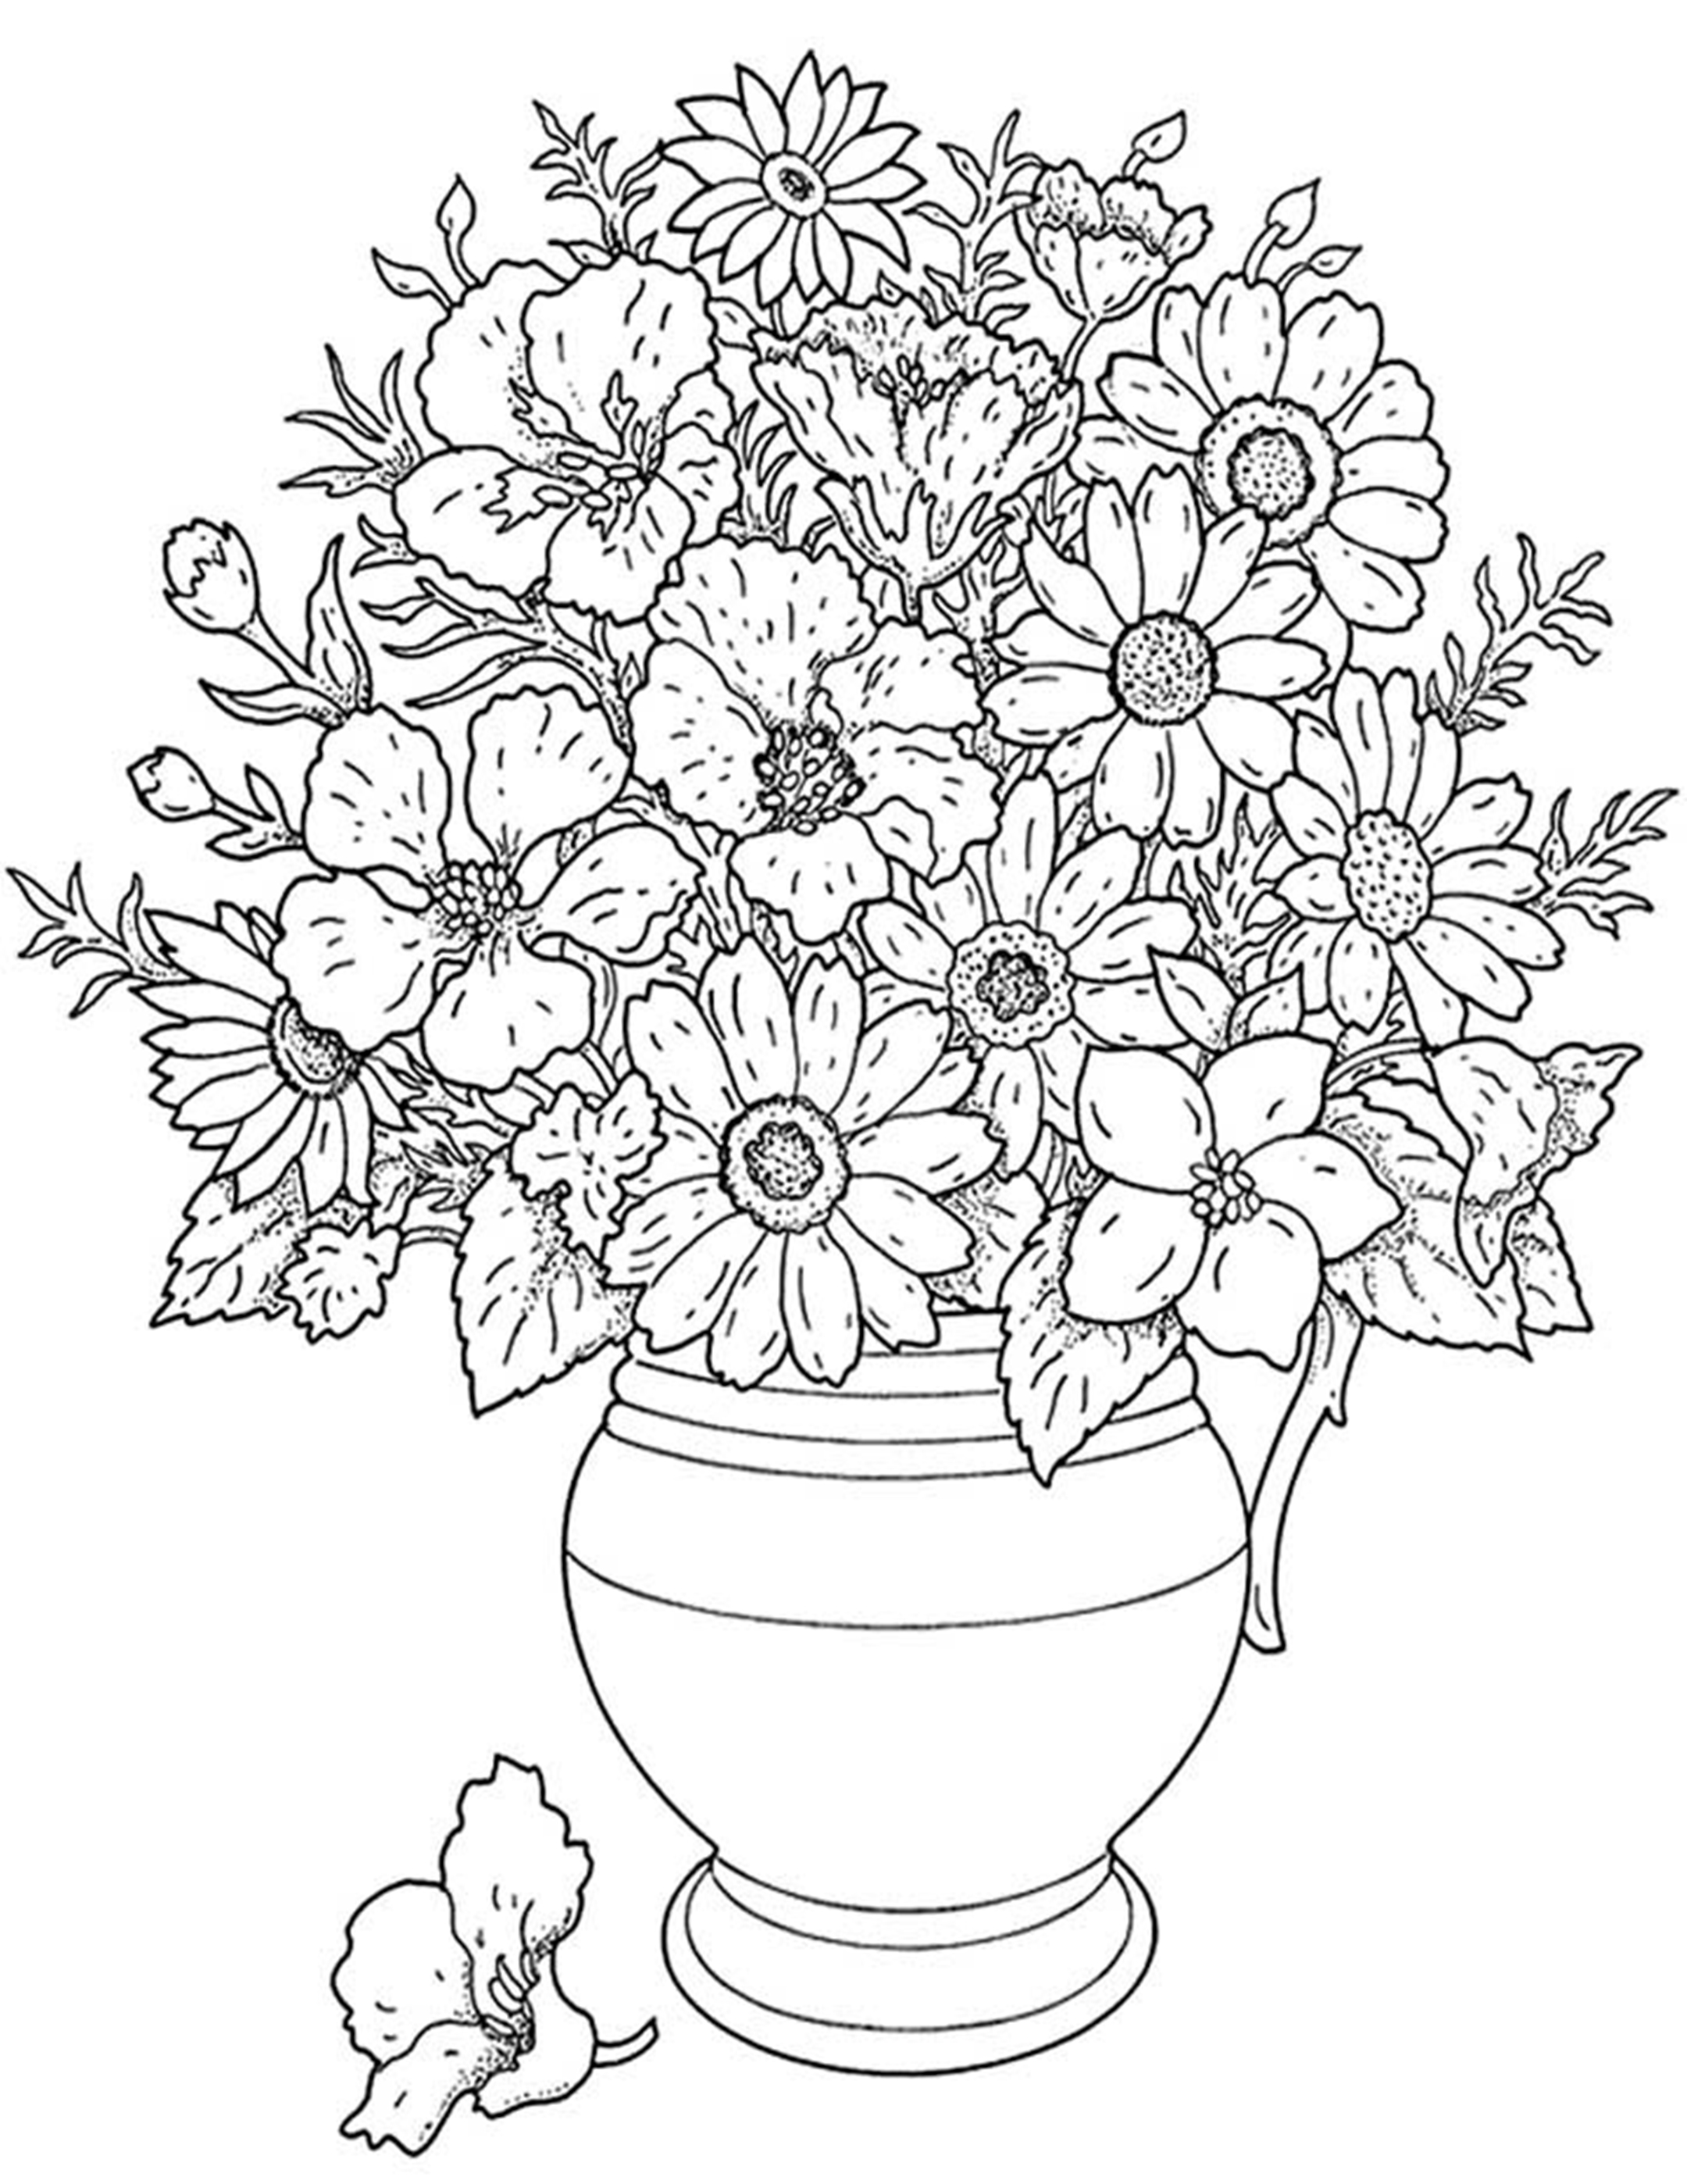 Free Printable Flower Coloring Pages For Kids Best Bouquet Of Flowers Coloring Pages